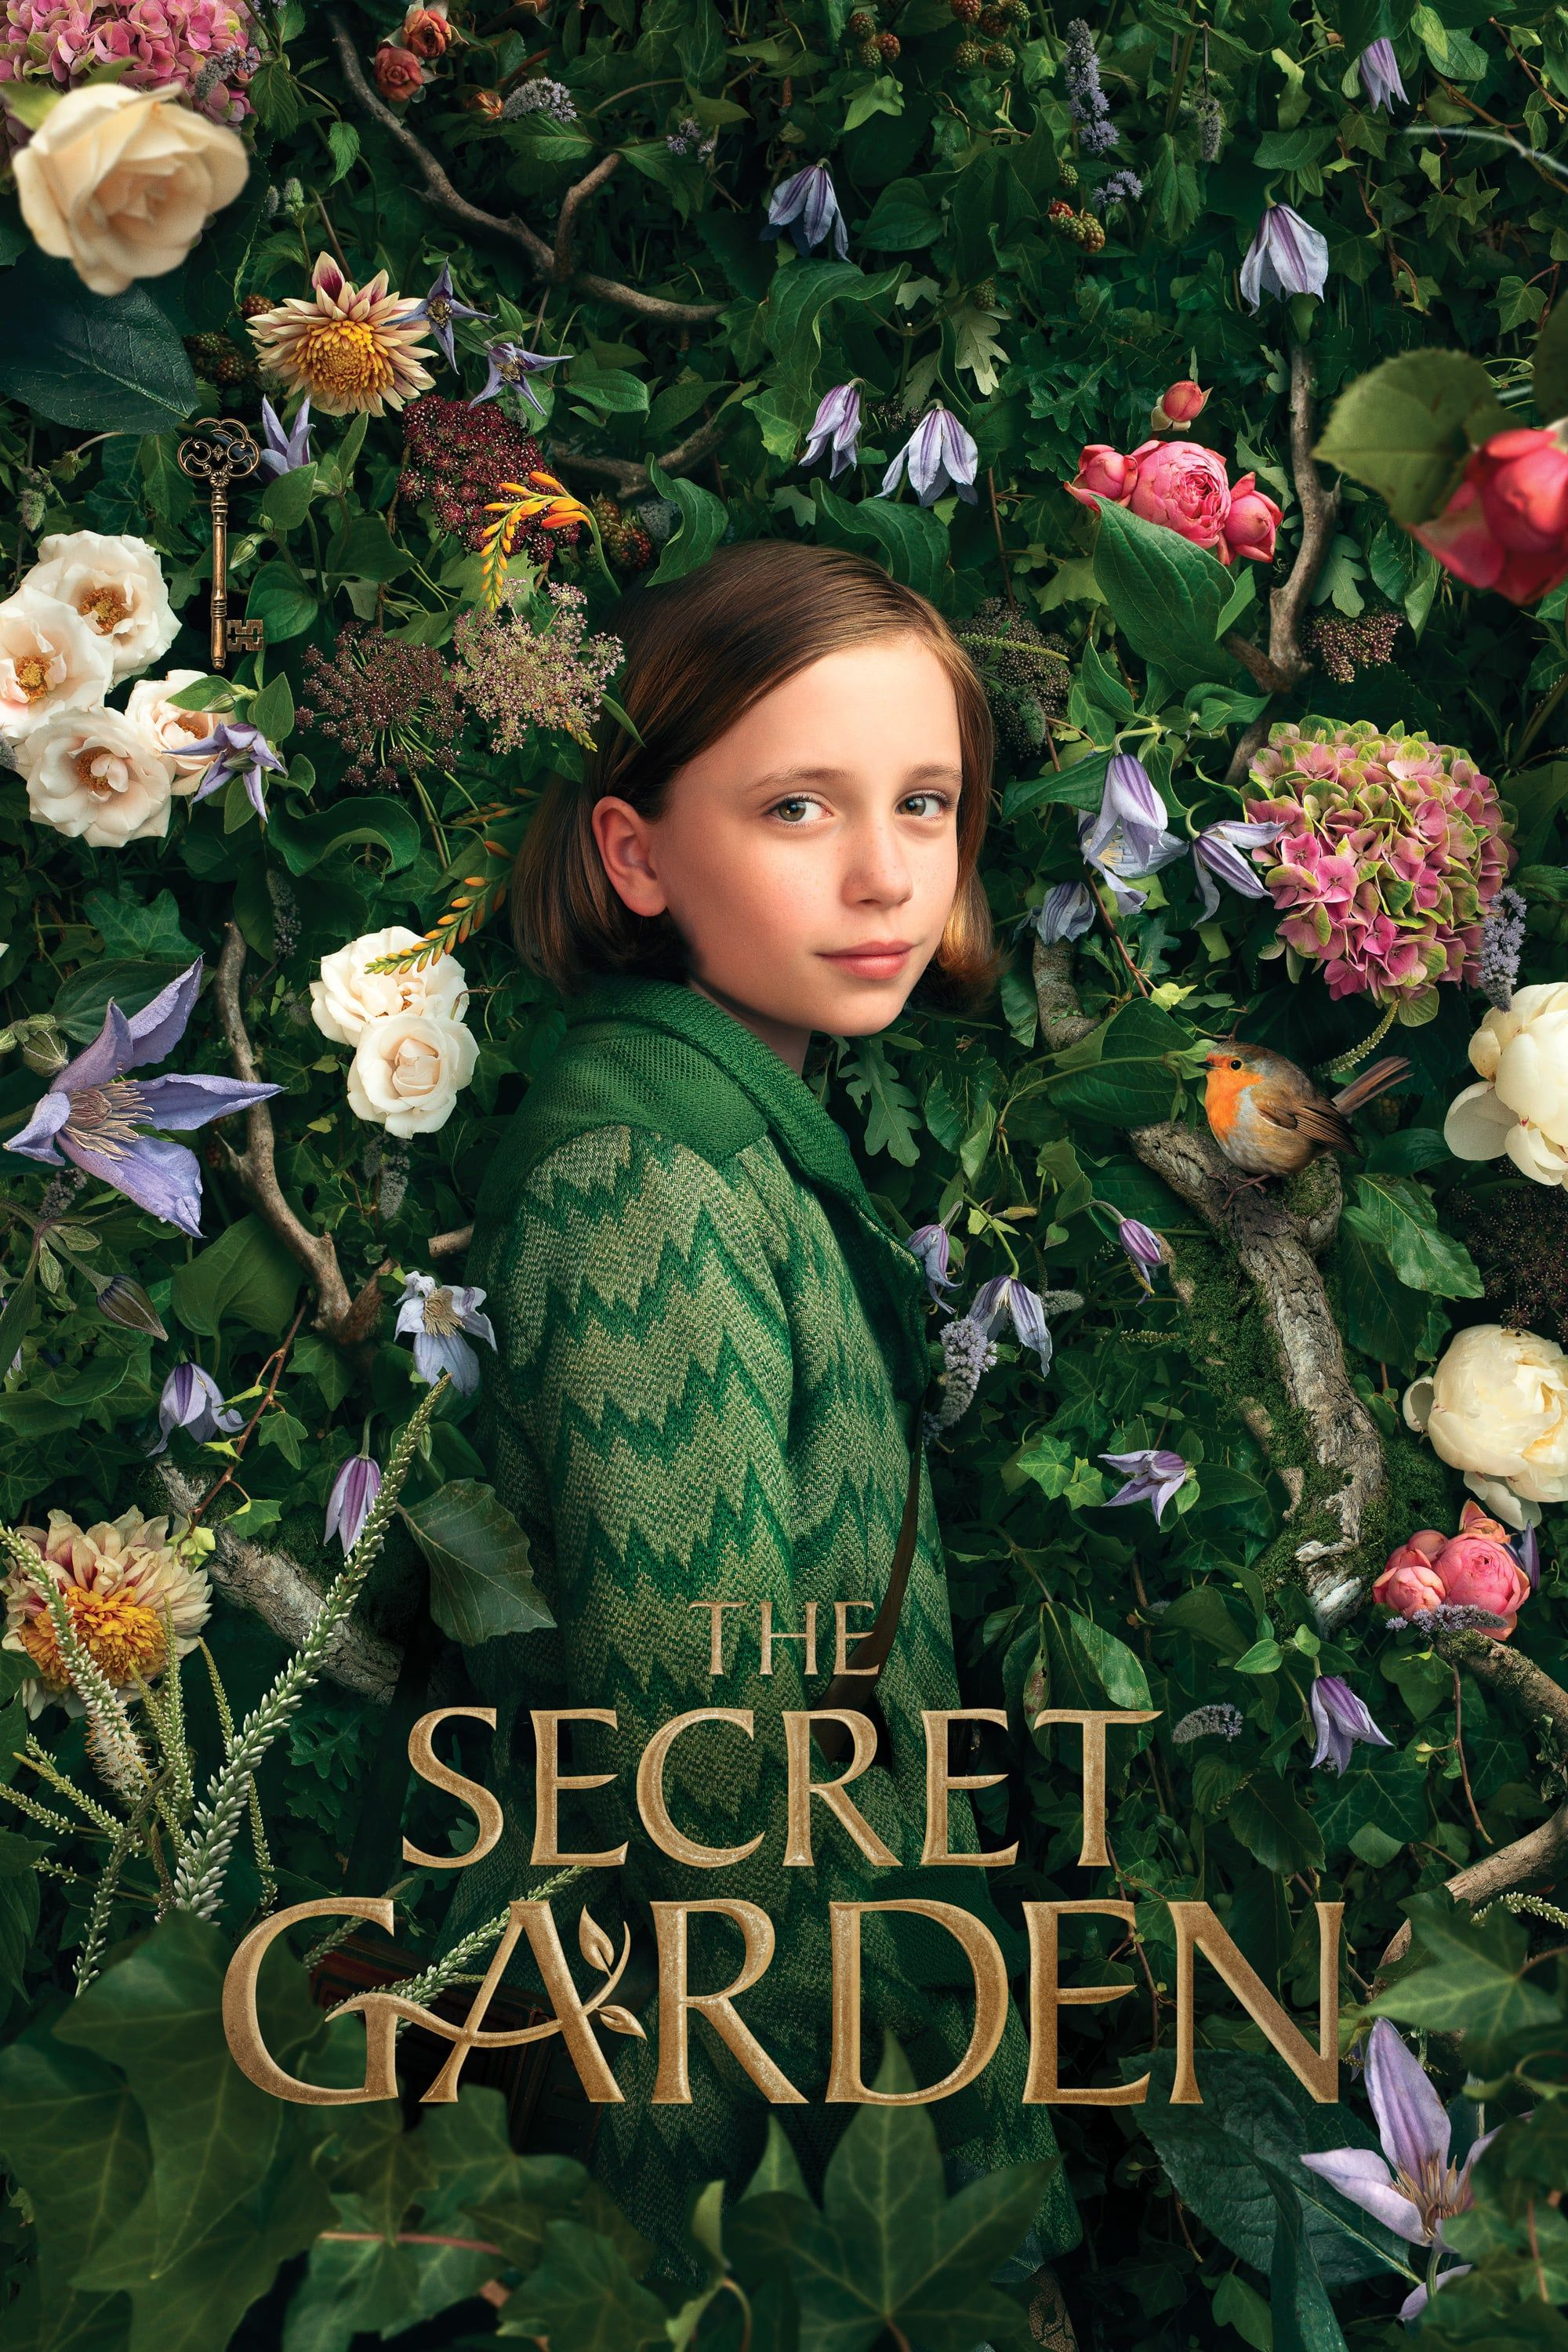 * The Secret Garden in 2020 Secret garden, The secret